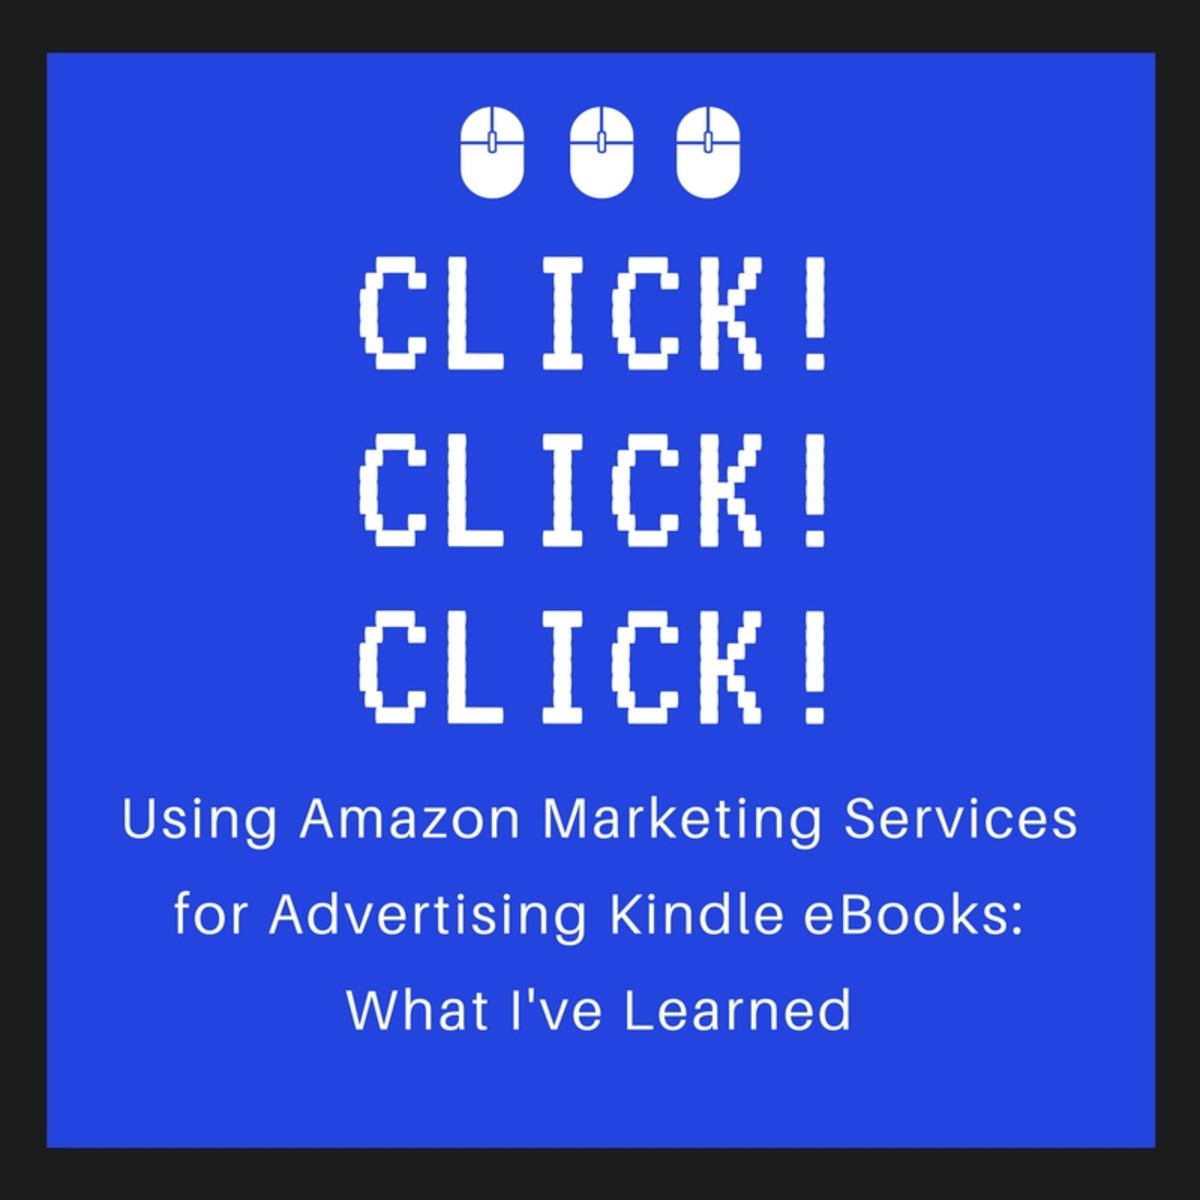 Using Amazon Marketing Services for Advertising Kindle Ebooks: What